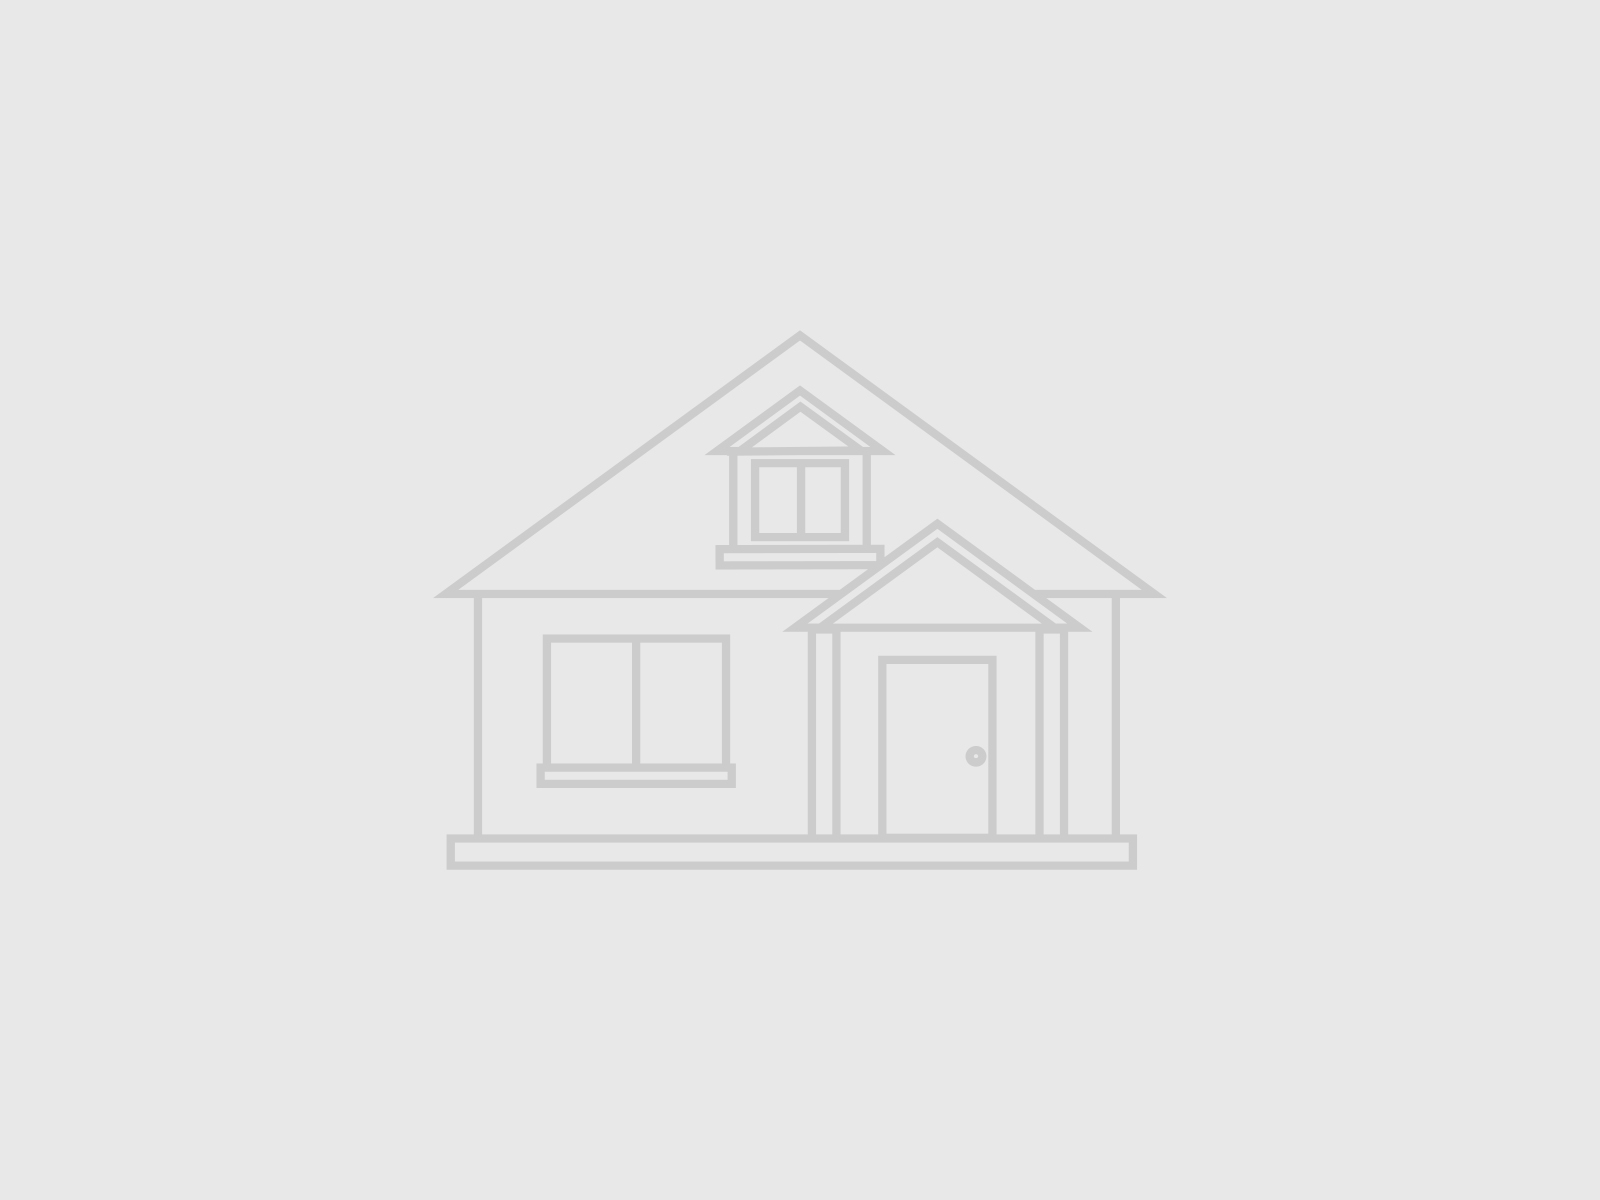 Single Family Homes for Sale at 1217 Simmons Road O Fallon, Illinois 62269 United States